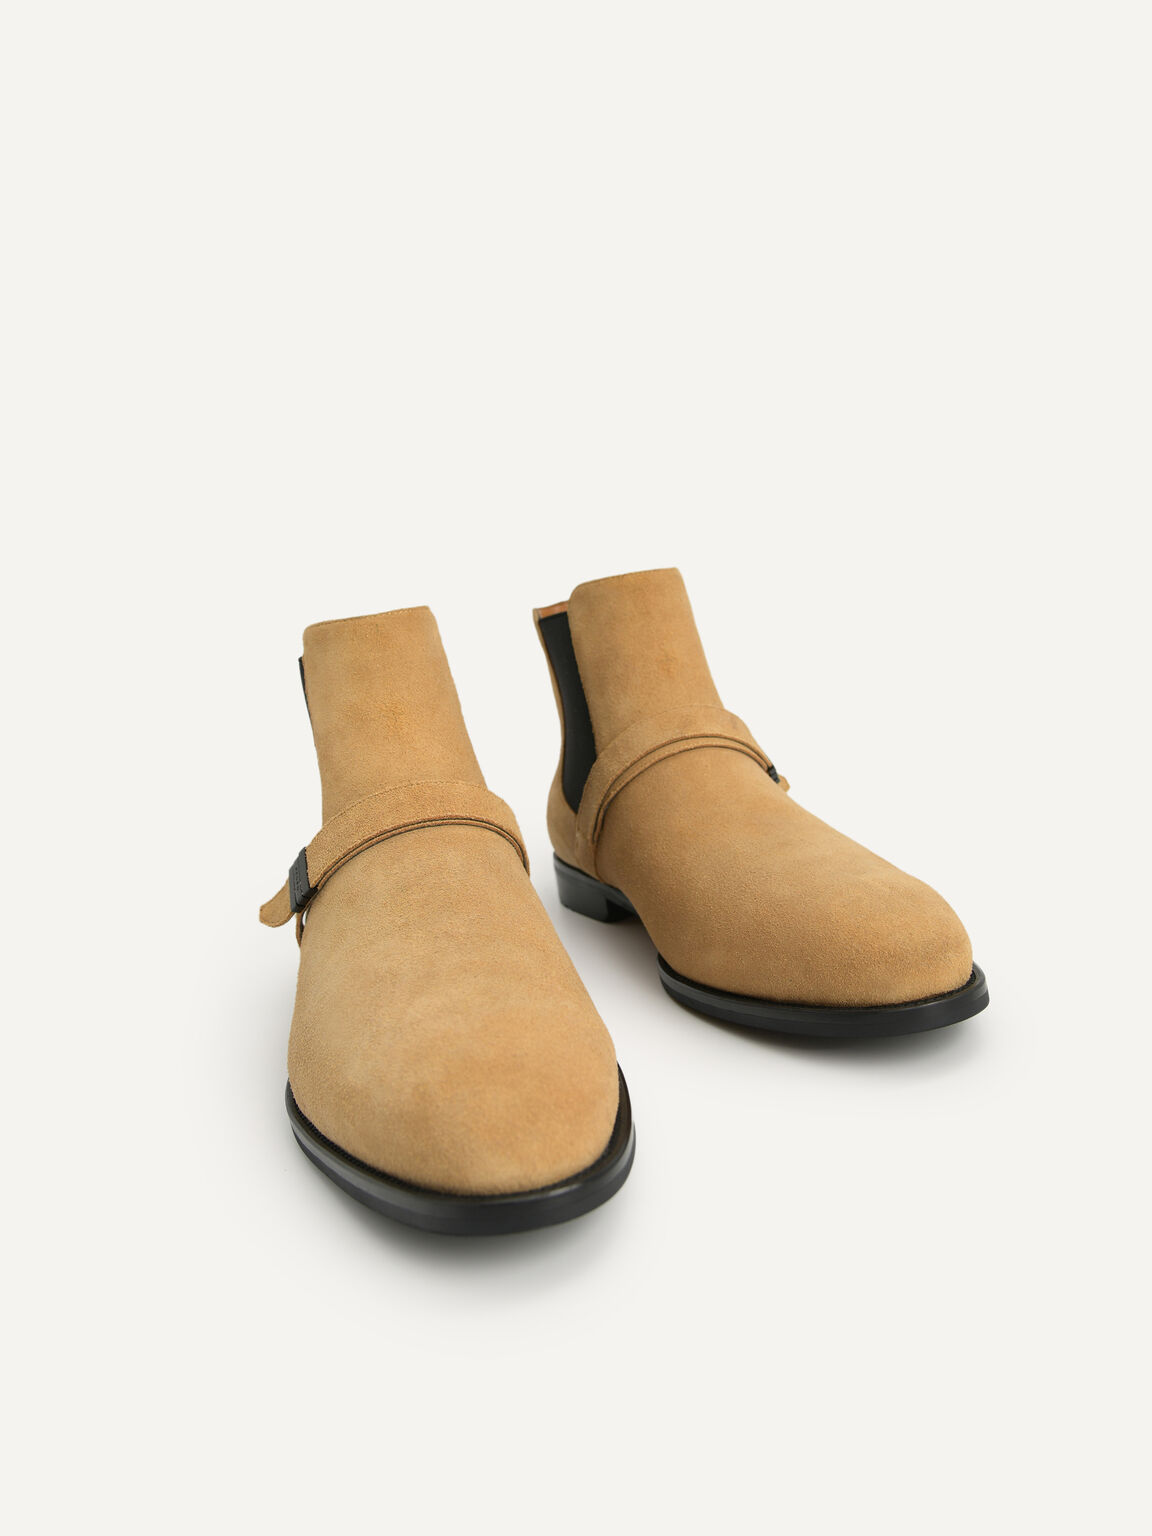 Suede Strapped Boots, Sand, hi-res